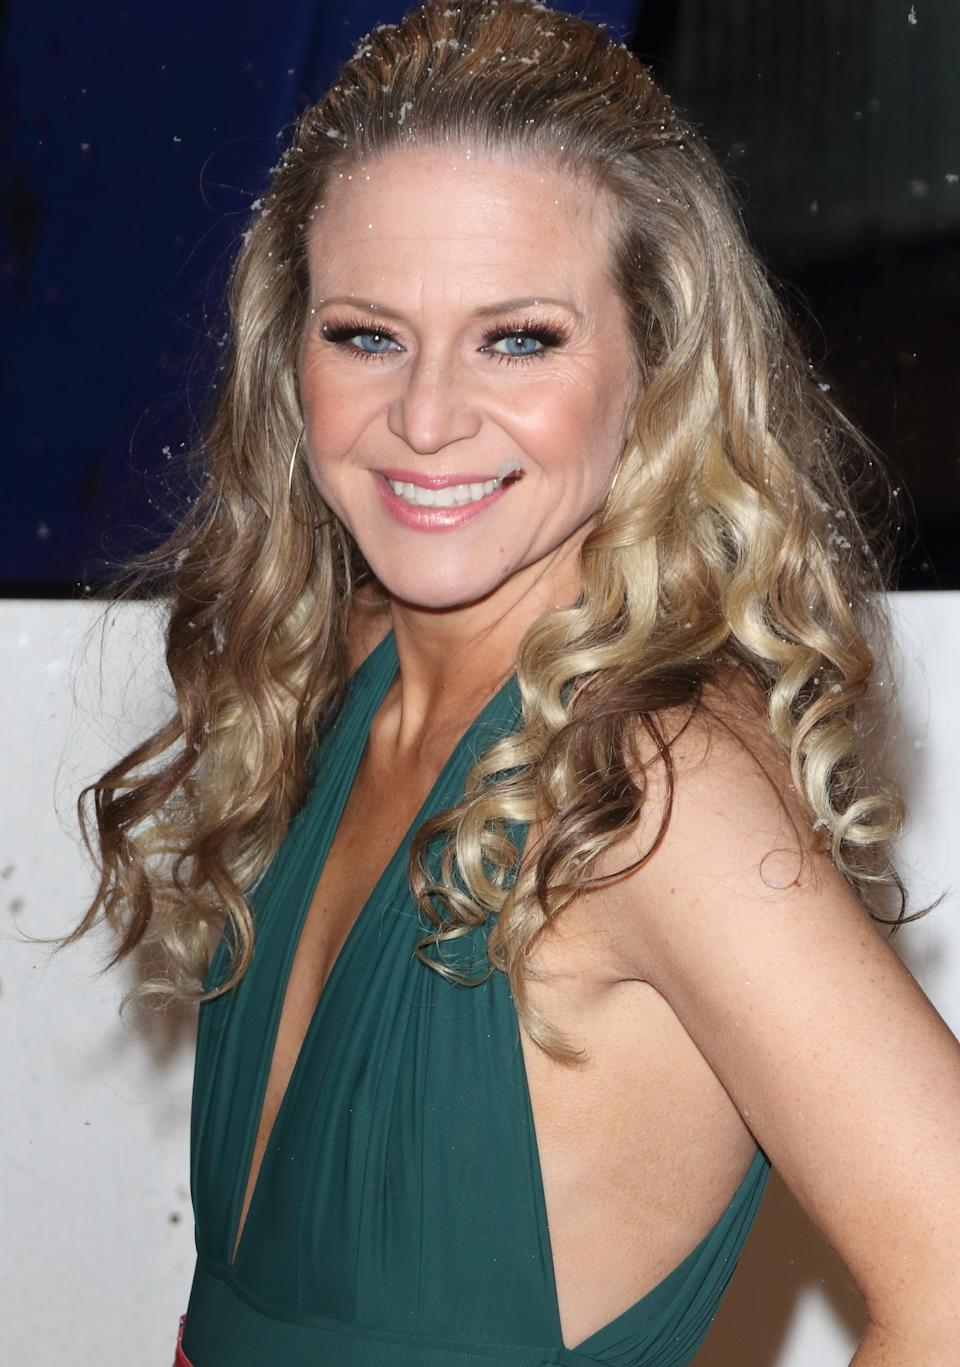 LONDON, -, UNITED KINGDOM - 2019/01/22: Kellie Bright seen on the red carpet during the National Television Awards at the O2, Peninsula Square in London. (Photo by Keith Mayhew/SOPA Images/LightRocket via Getty Images)